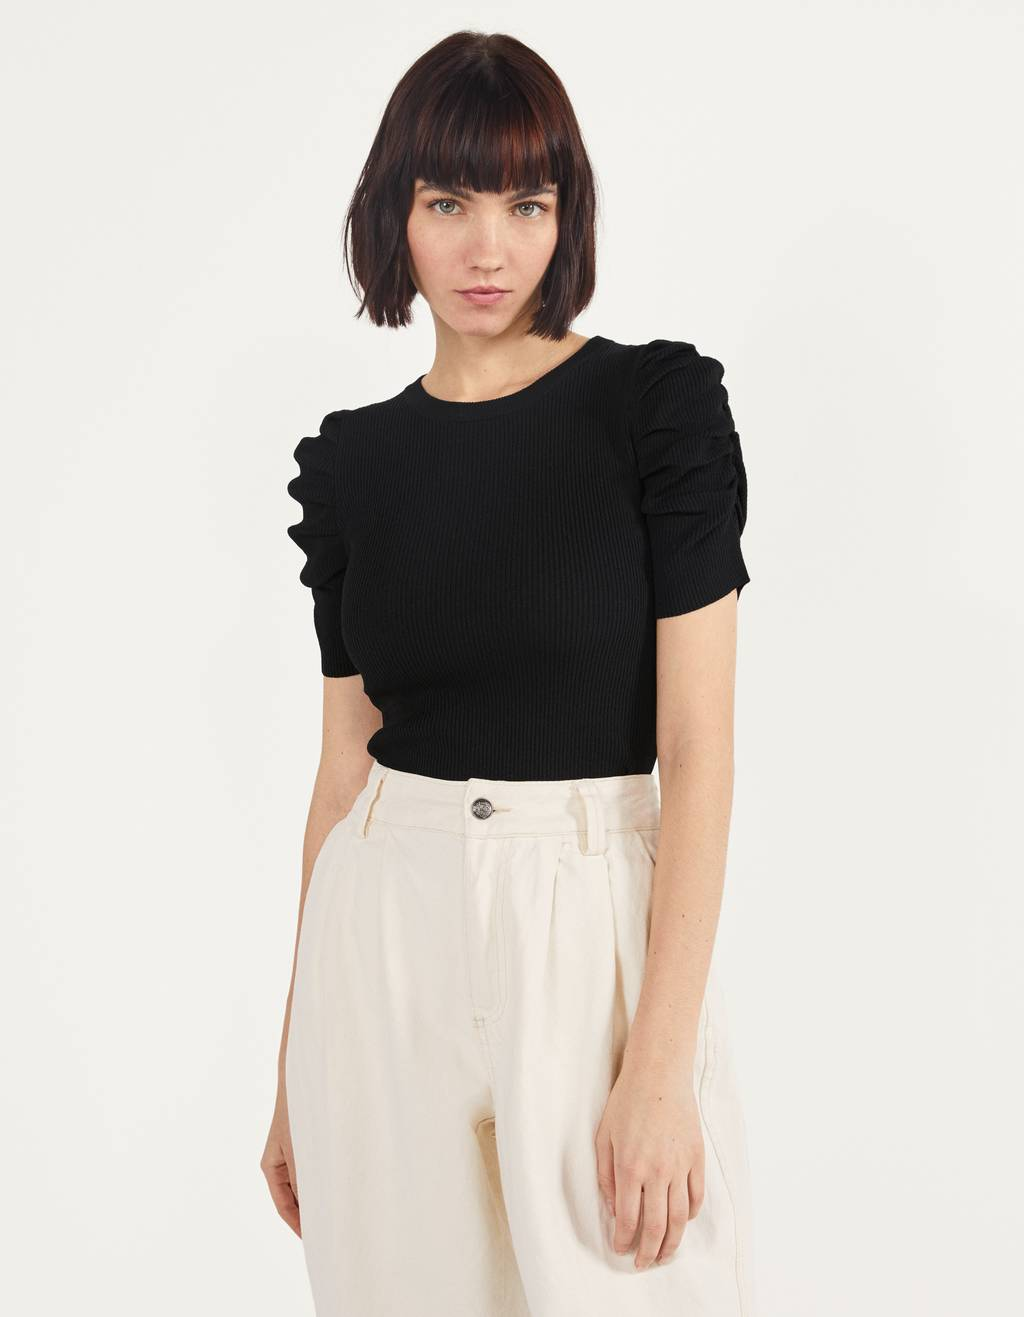 Knit top with voluminous sleeves